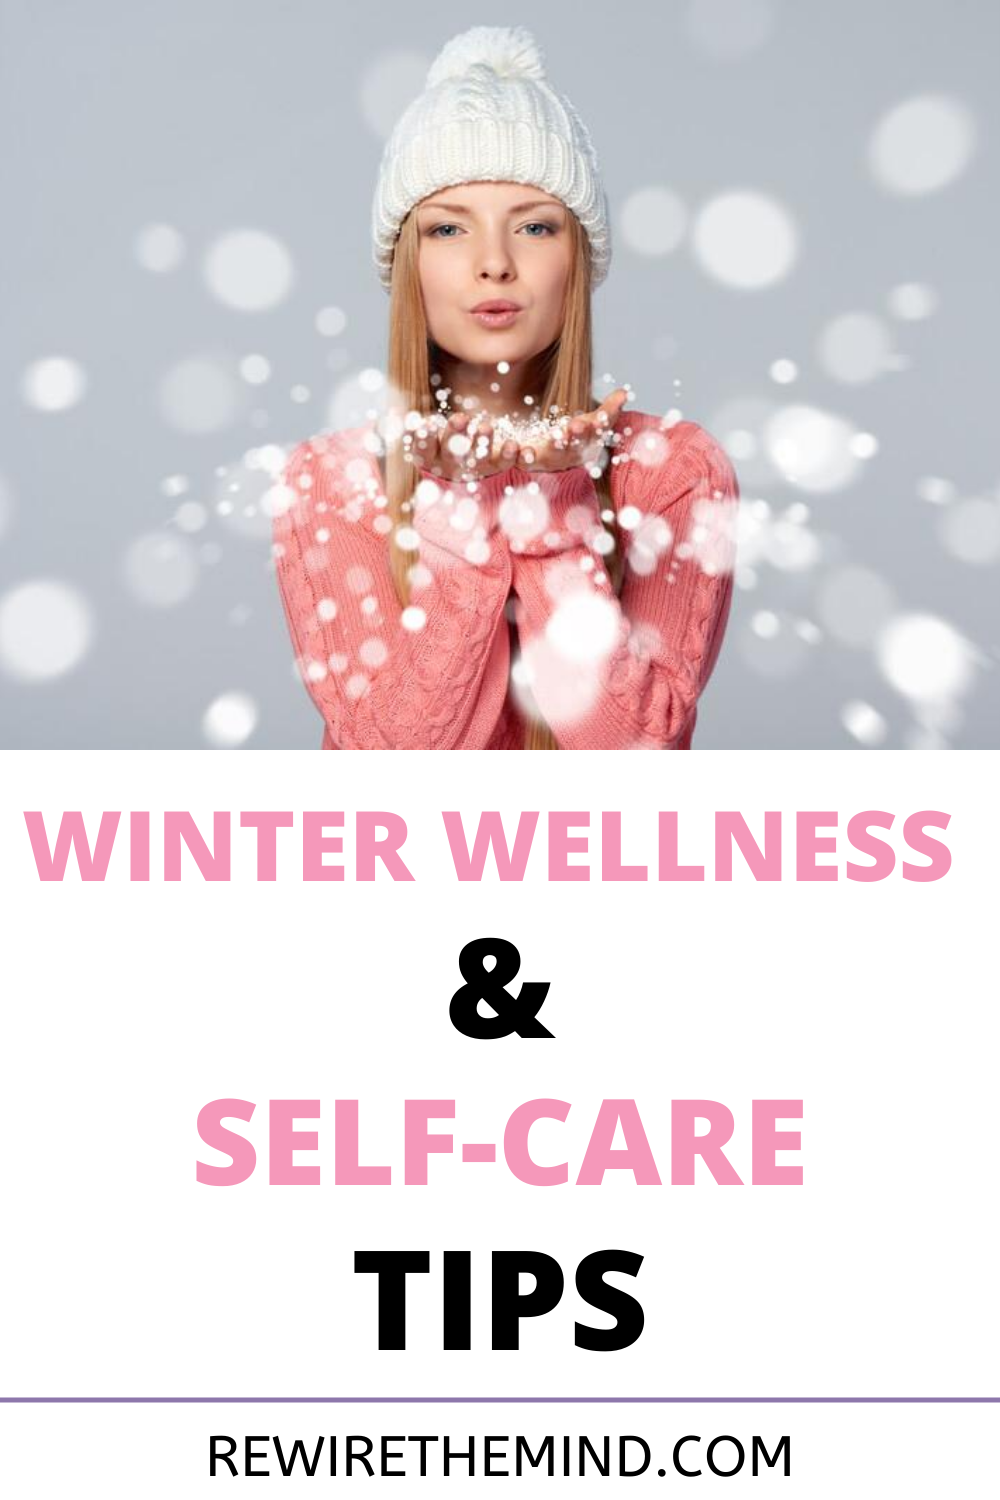 Winter time is on its way and the colder darker evenings can have an impact on your physical and mental health. Disover our winter wellness and self-care tips to help you through the season. Mental health natural solutions to improve your wellbeing. #winterselfcare #winterwellness #winterblues #wintermood #winterselfcarechallenge #wintermentalhealth #winterdepression #winter #selfcare #wellnessinwinter